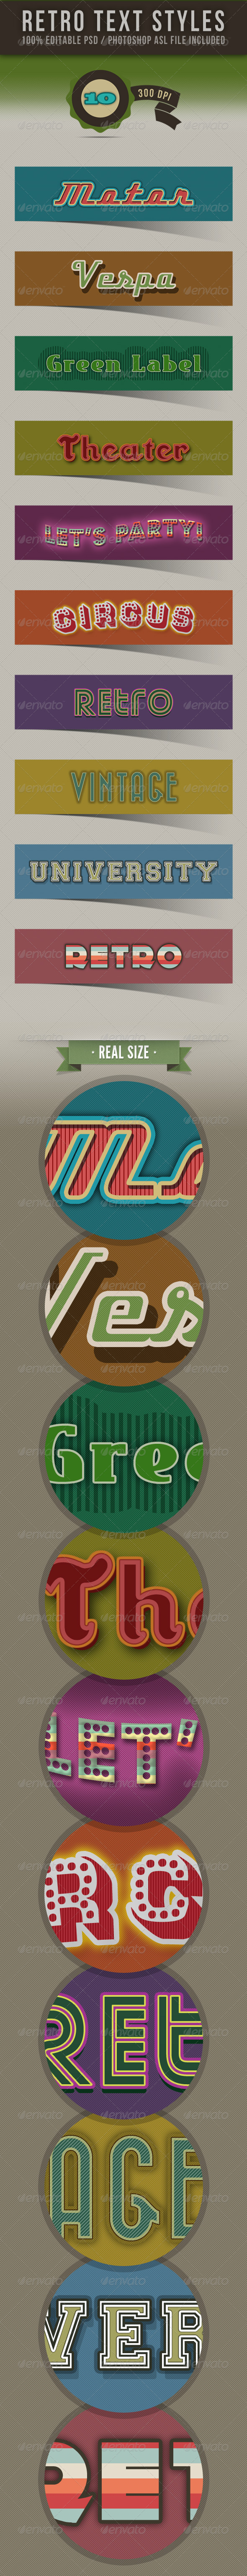 GraphicRiver Retro Text Styles 3718172